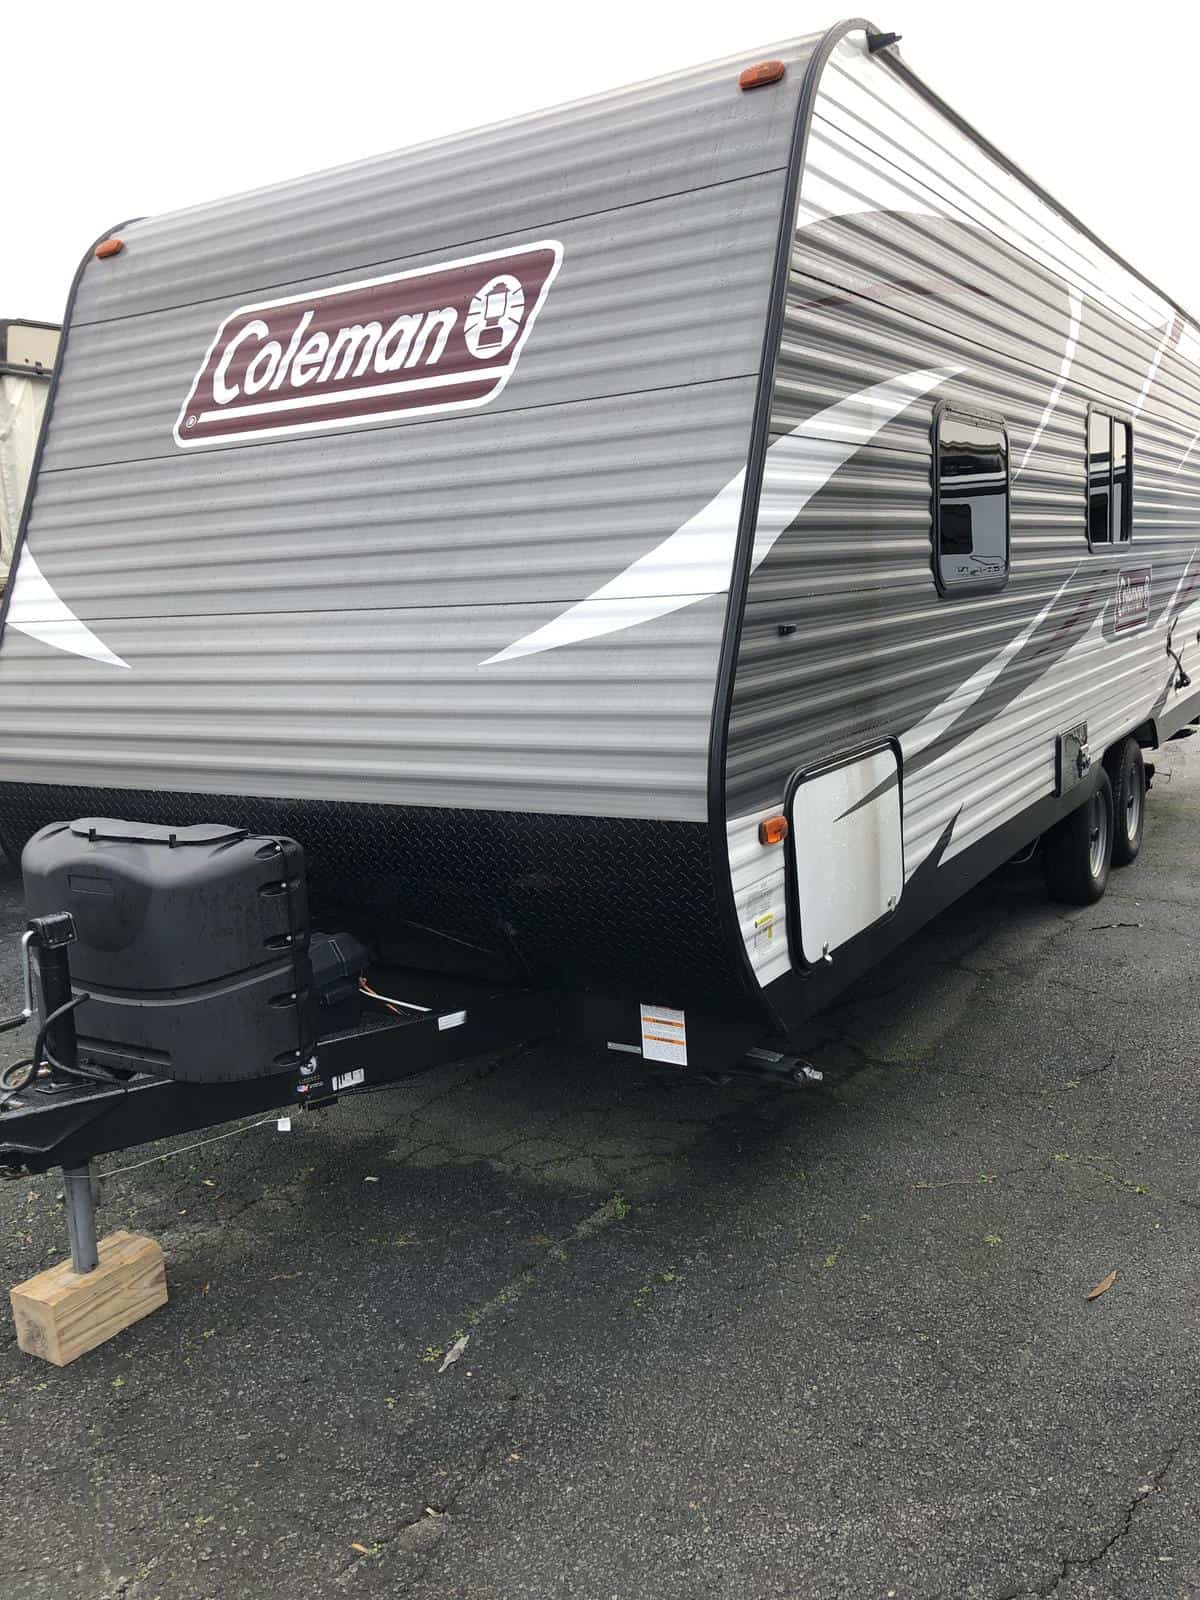 USED 2018 Coleman rv Coleman 215BH - Three Way Campers